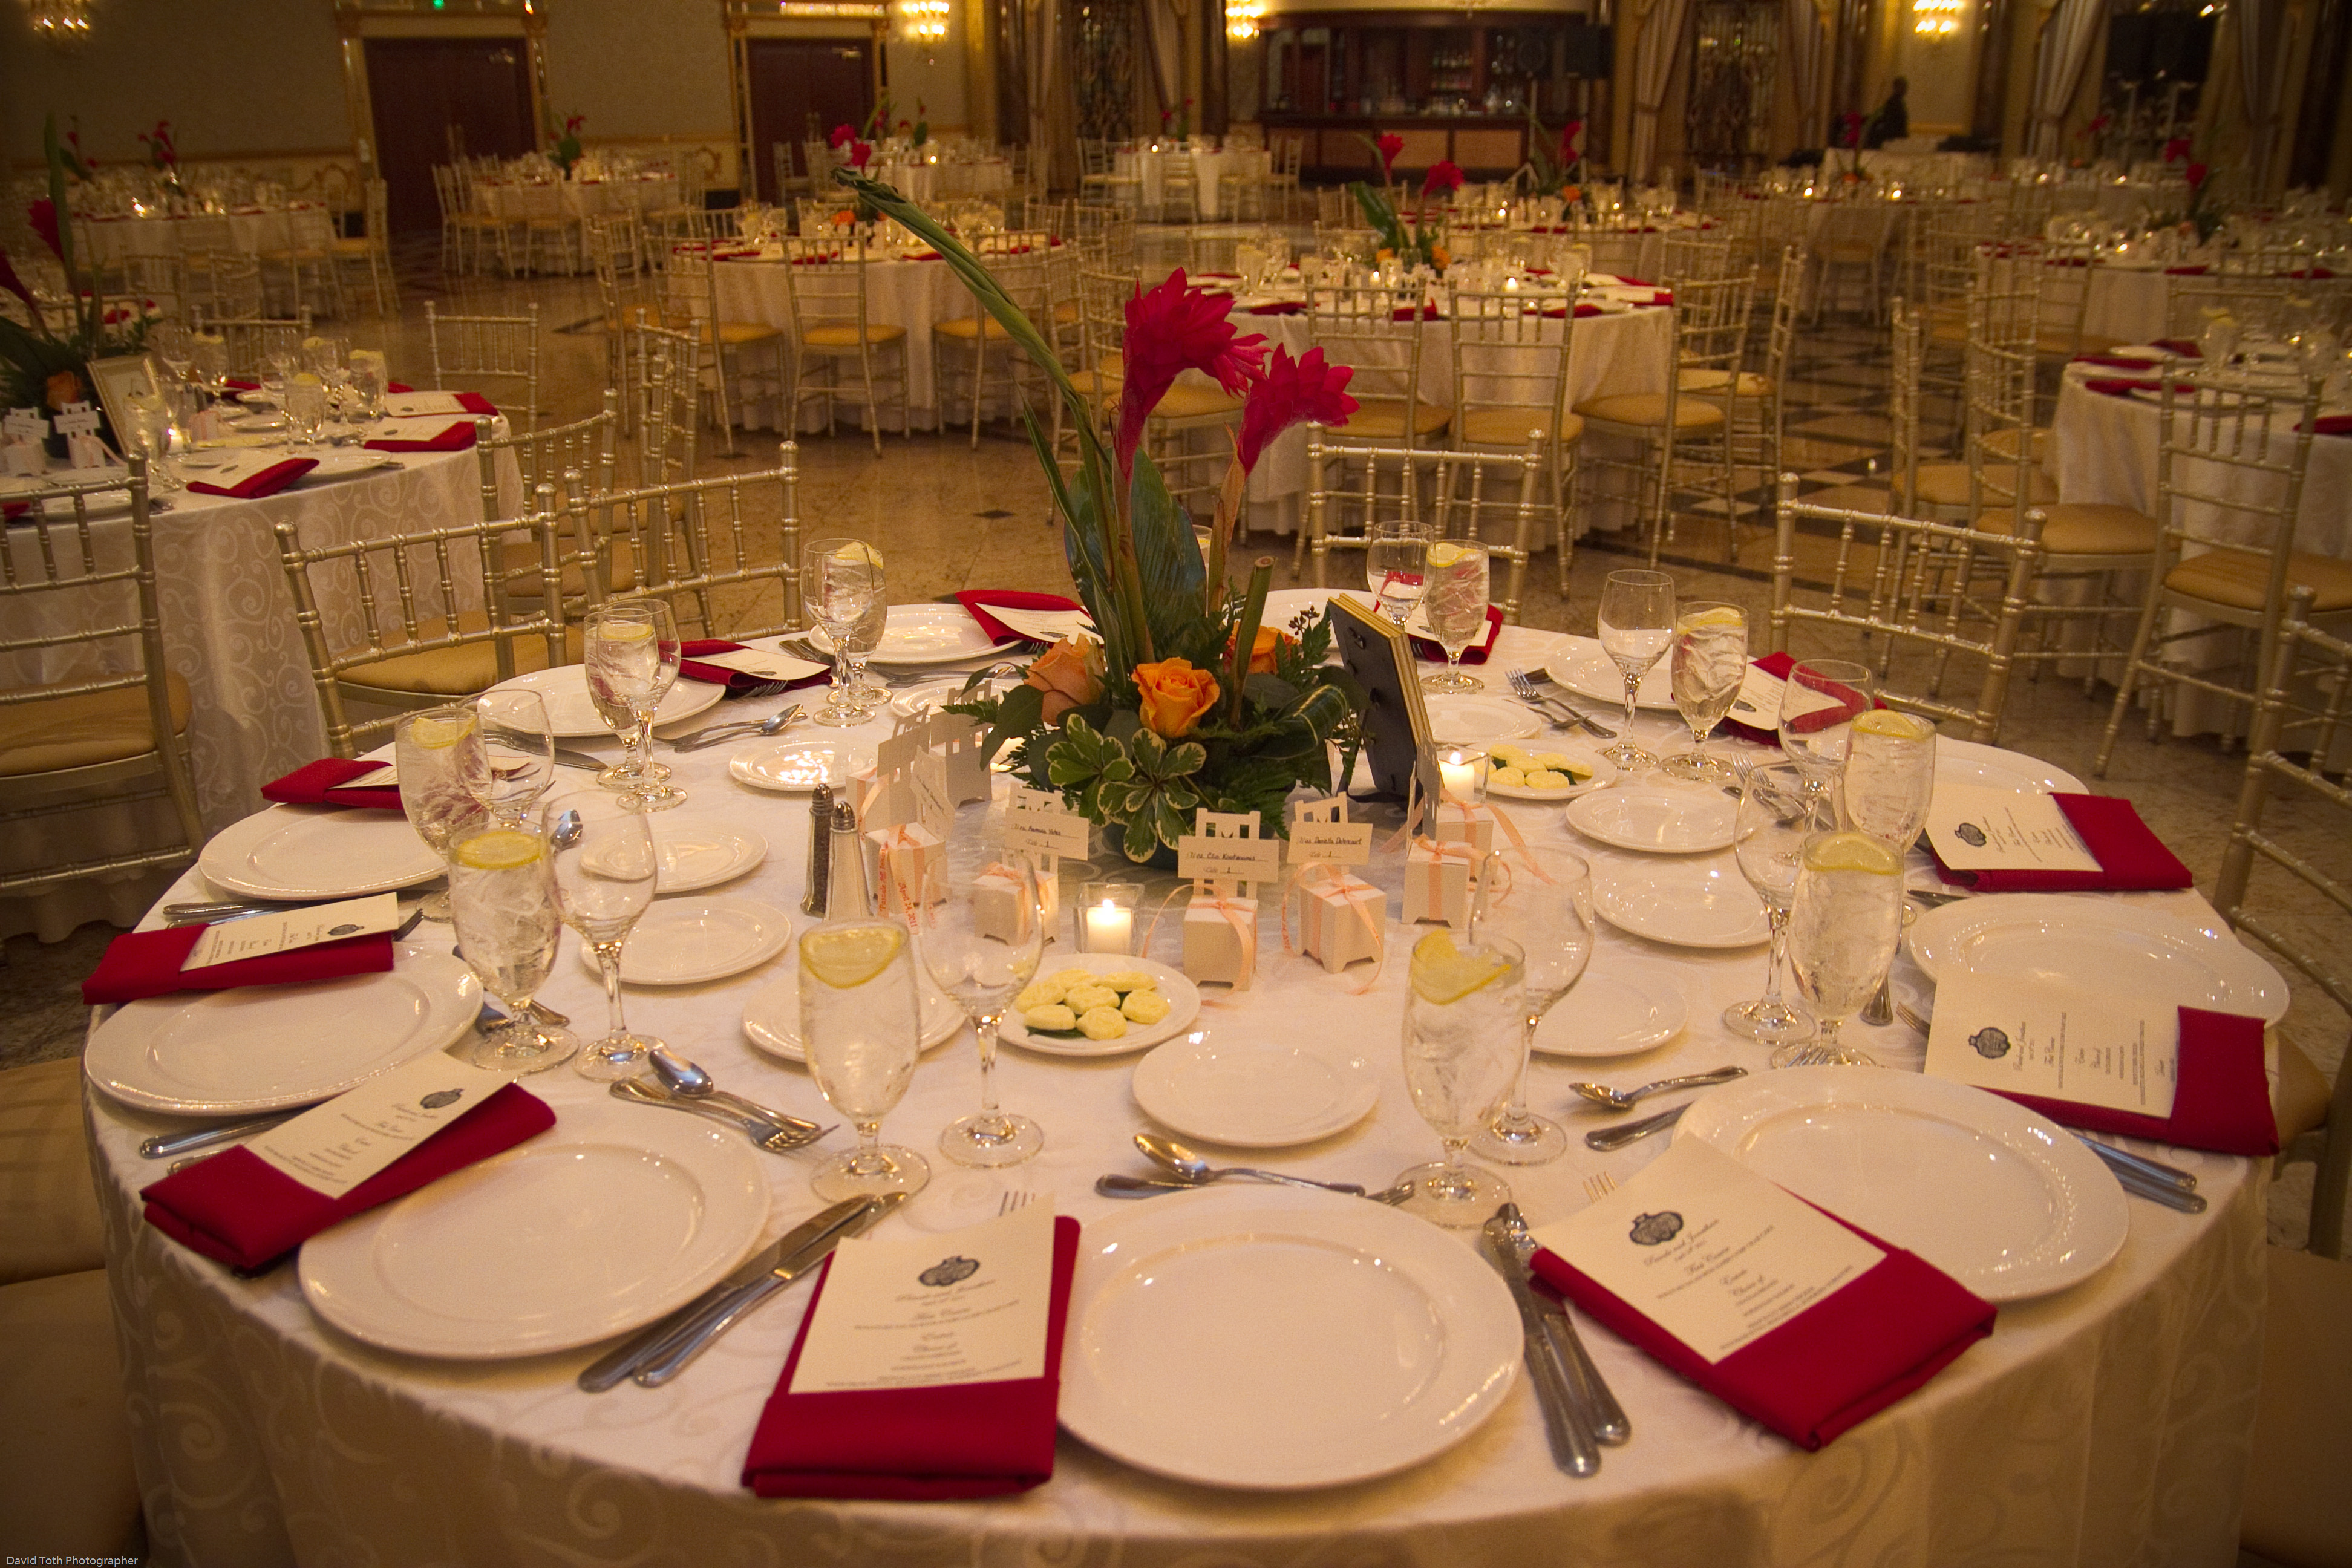 The Venetian Wedding Dinner Table